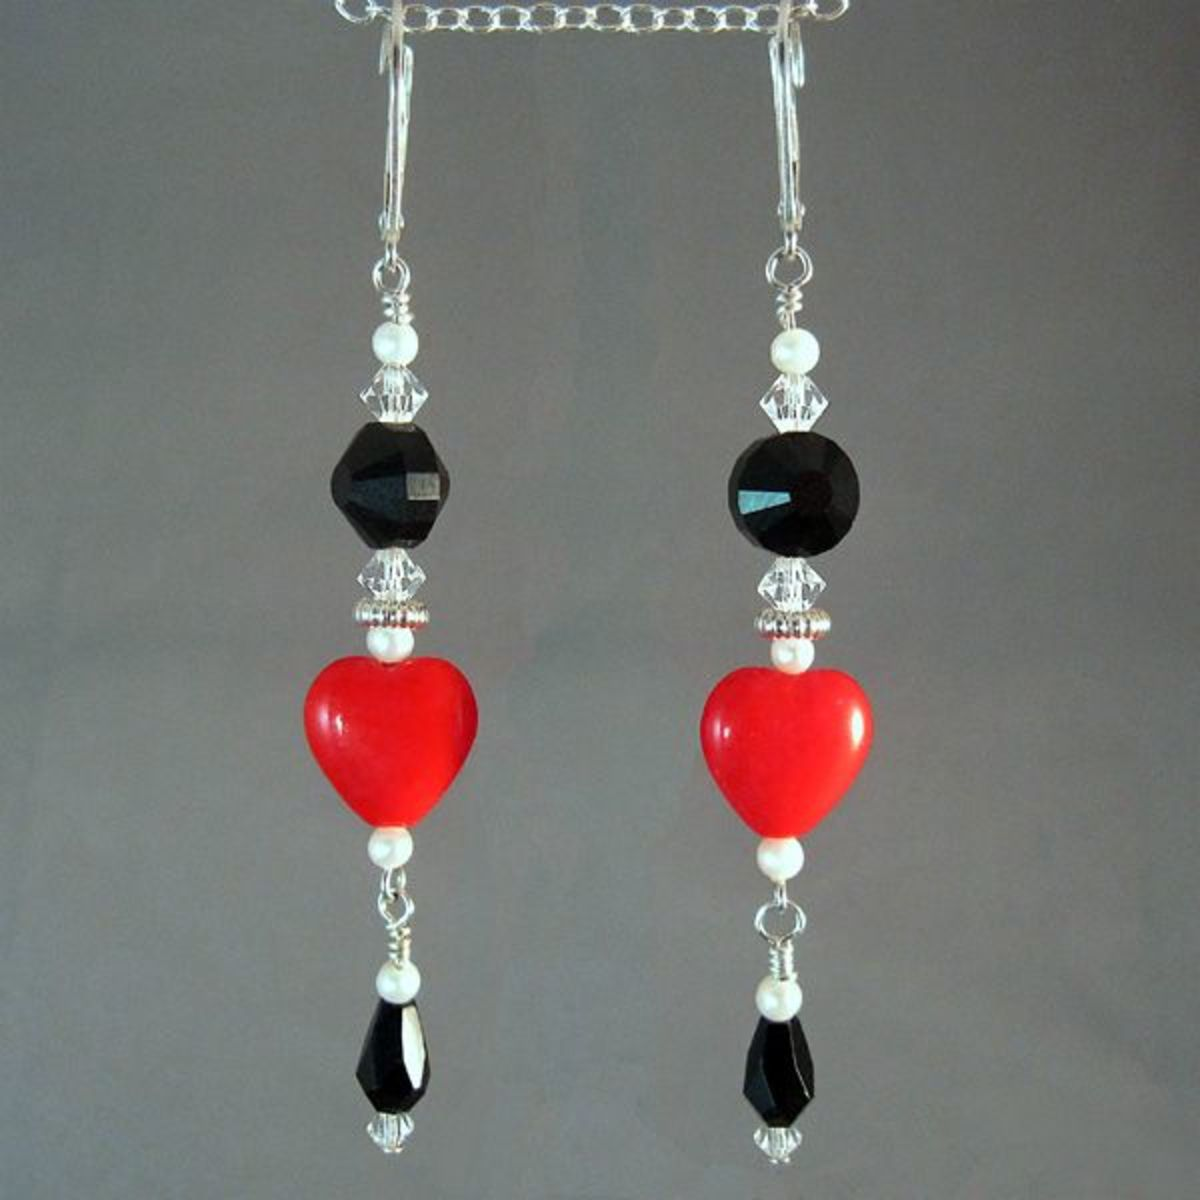 Another view of the finished earrings